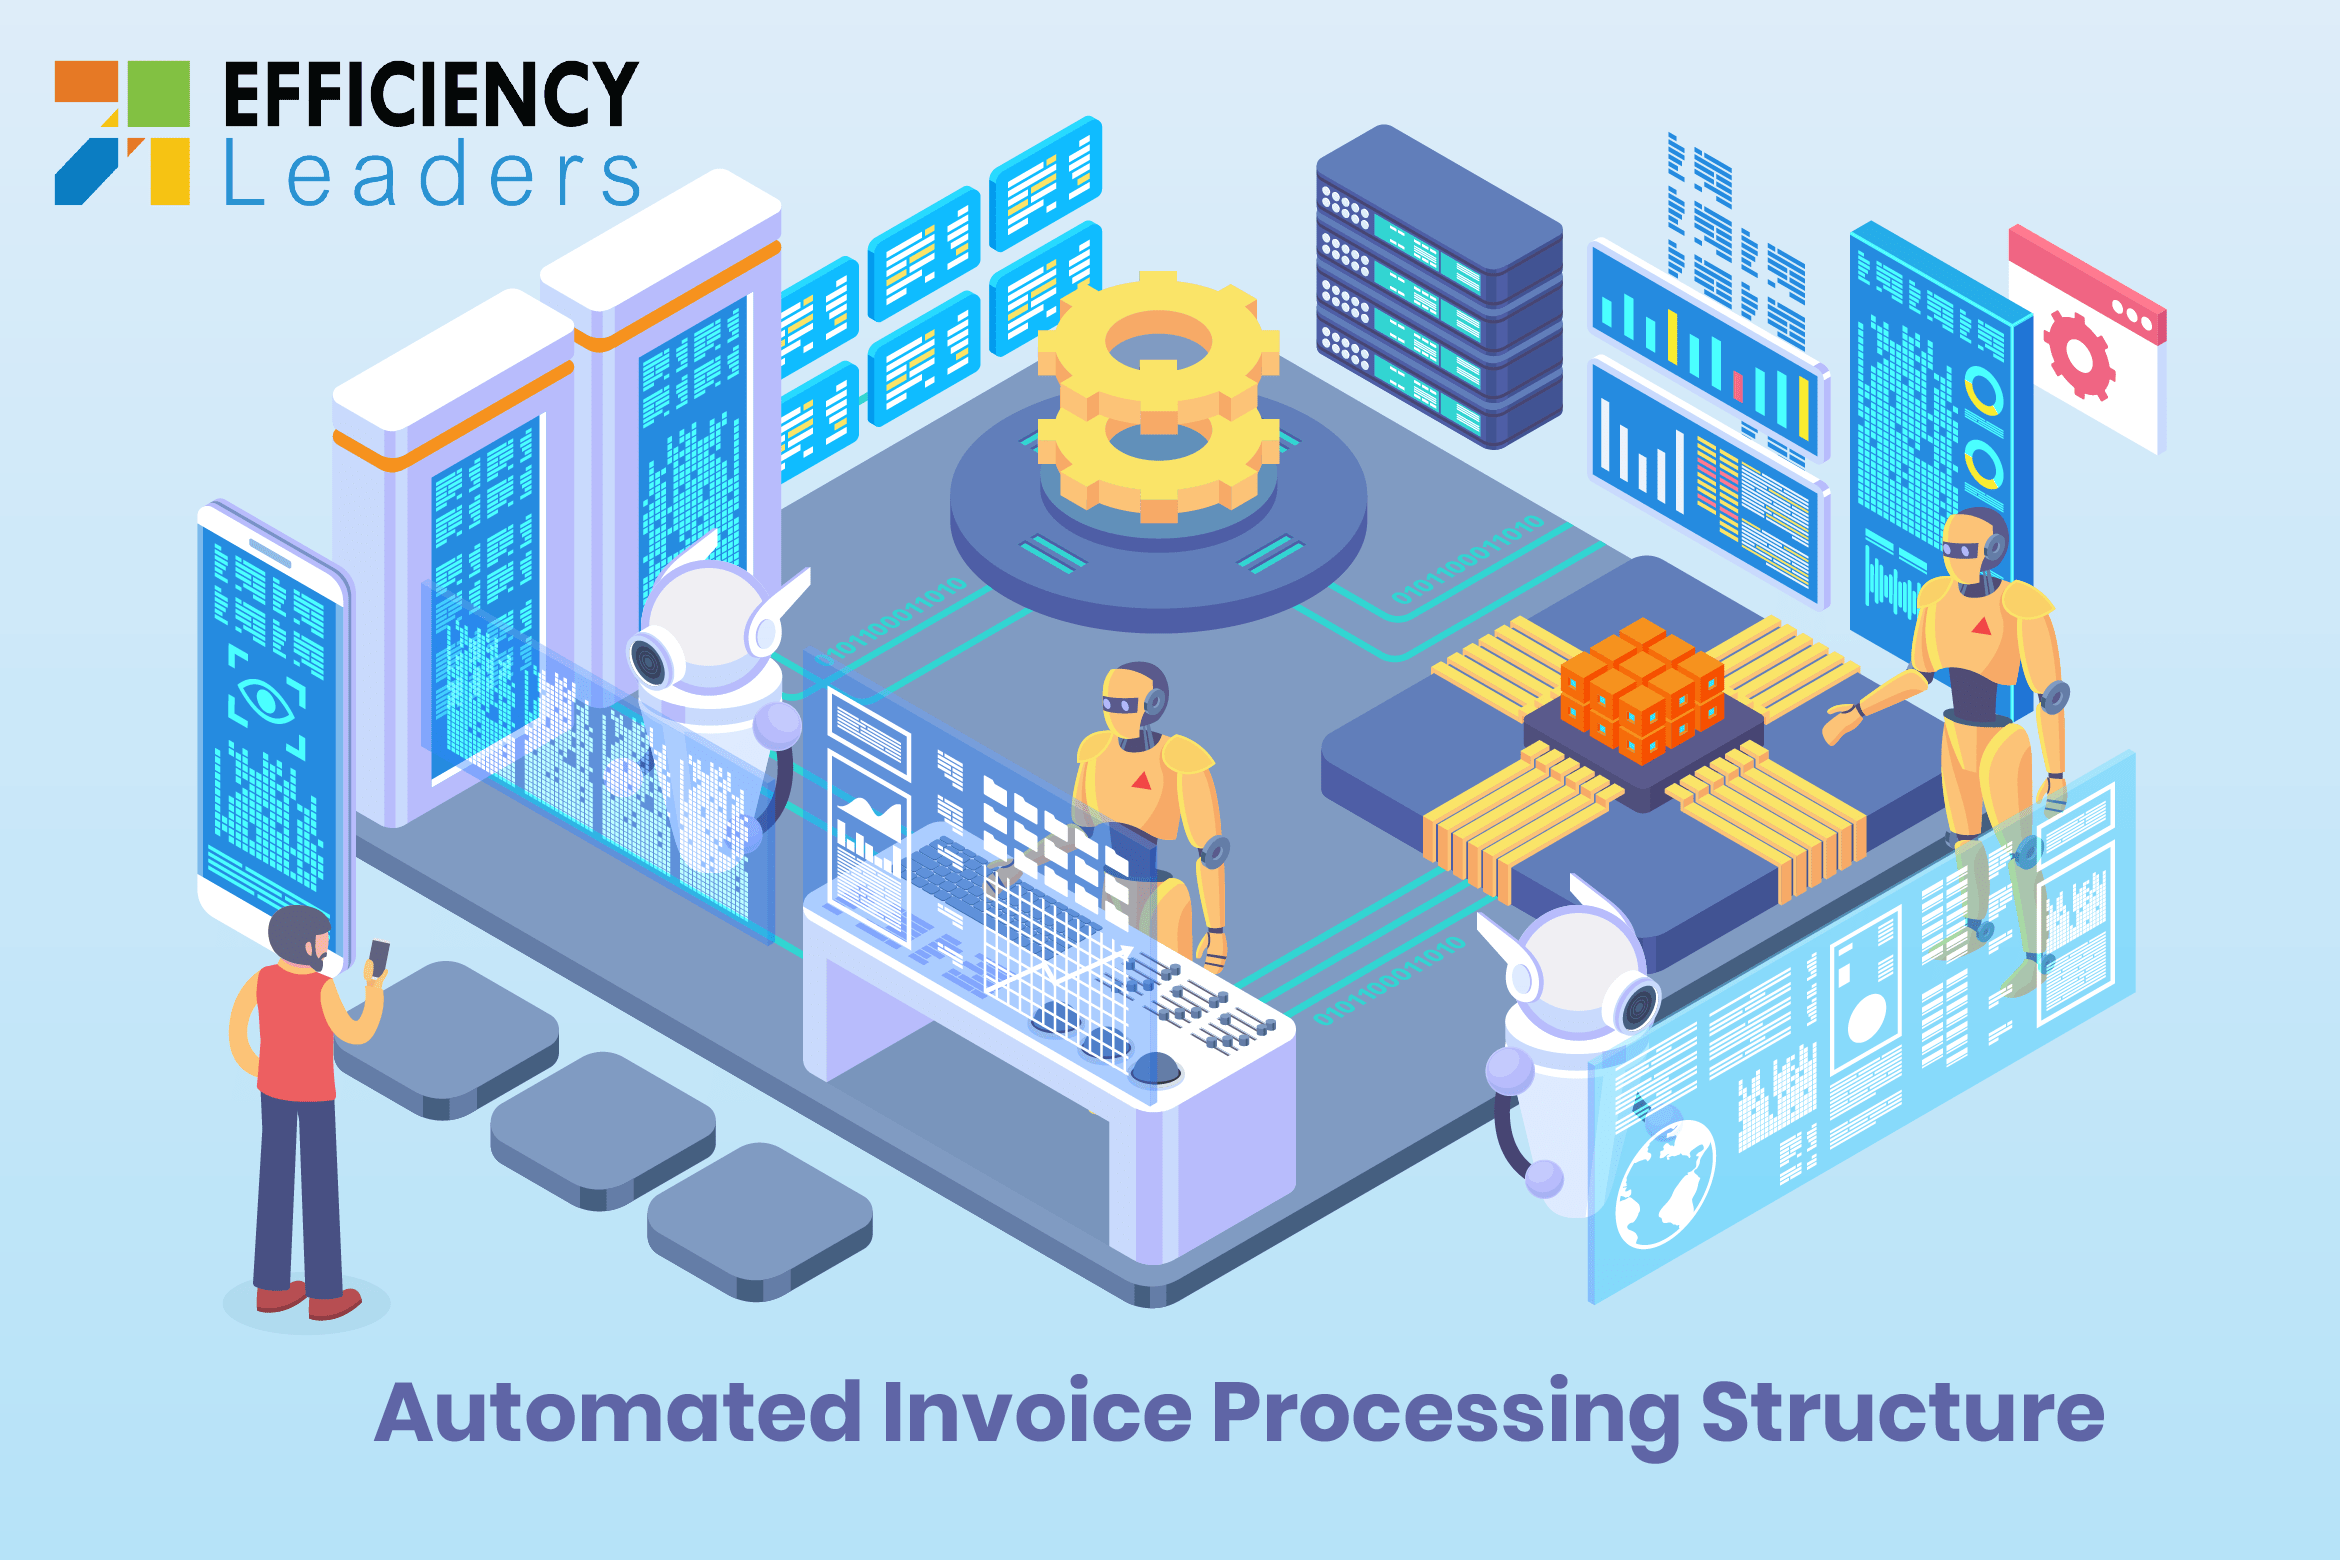 The Automated Invoice Processing Structure